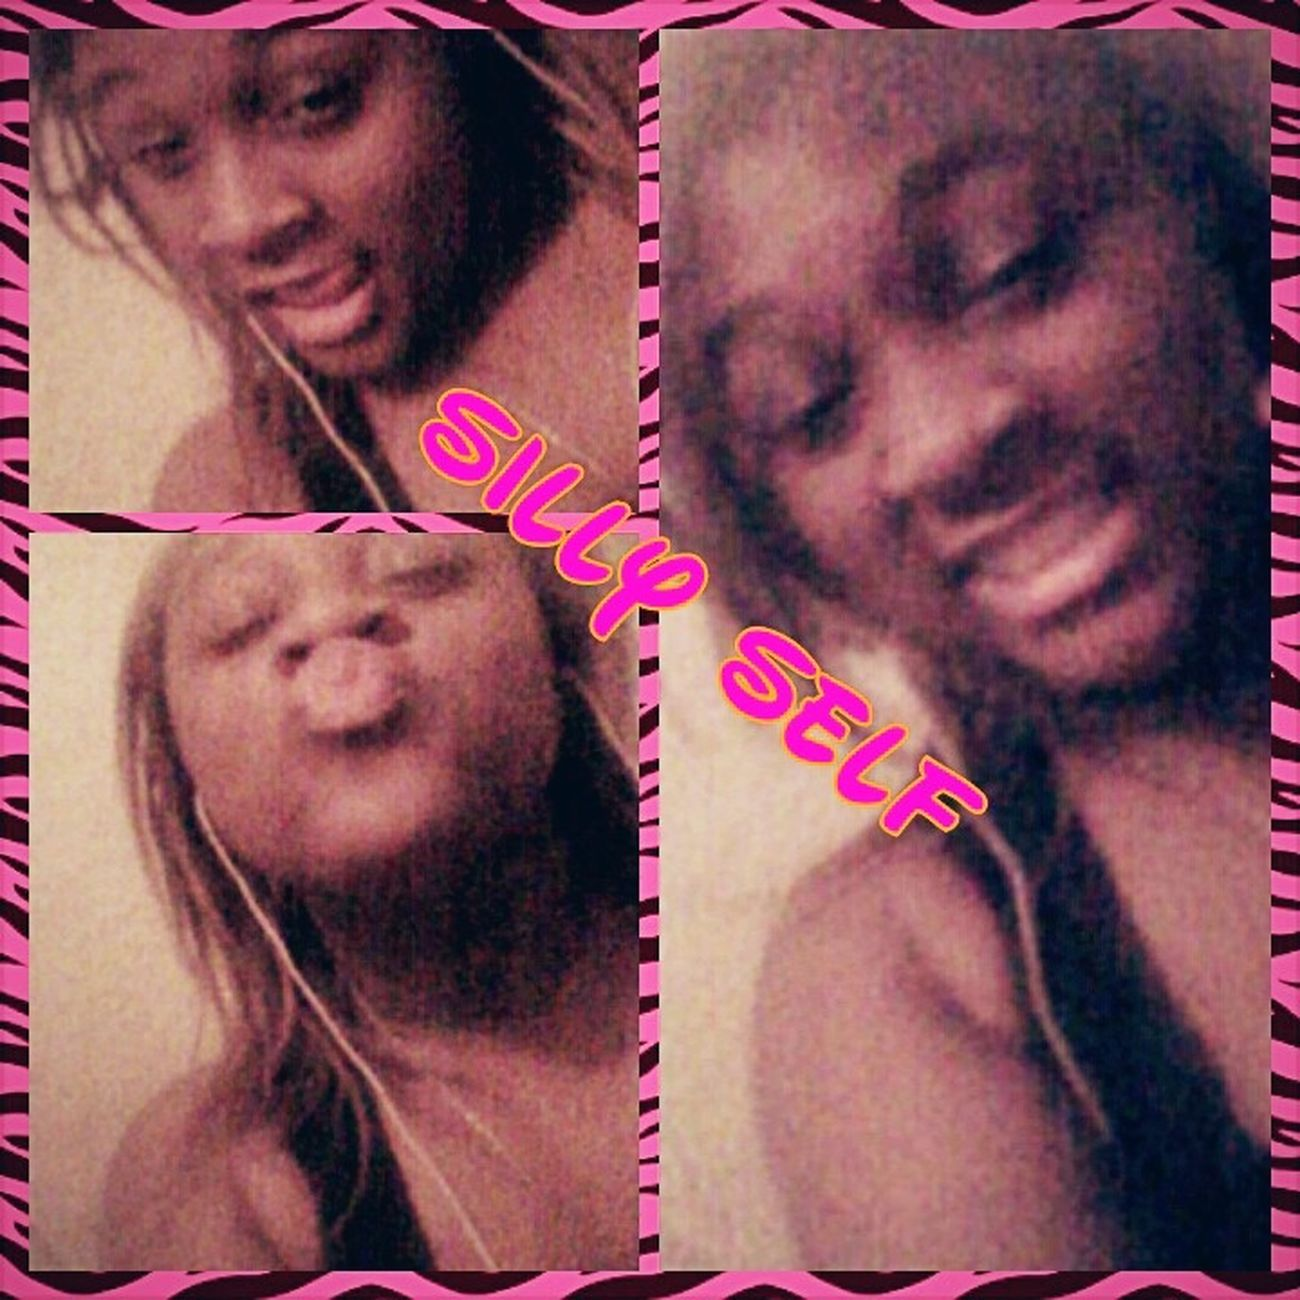 Just Chillin' Being Silly Acting Silly (: ~ Meh ^.^ ♥ ~